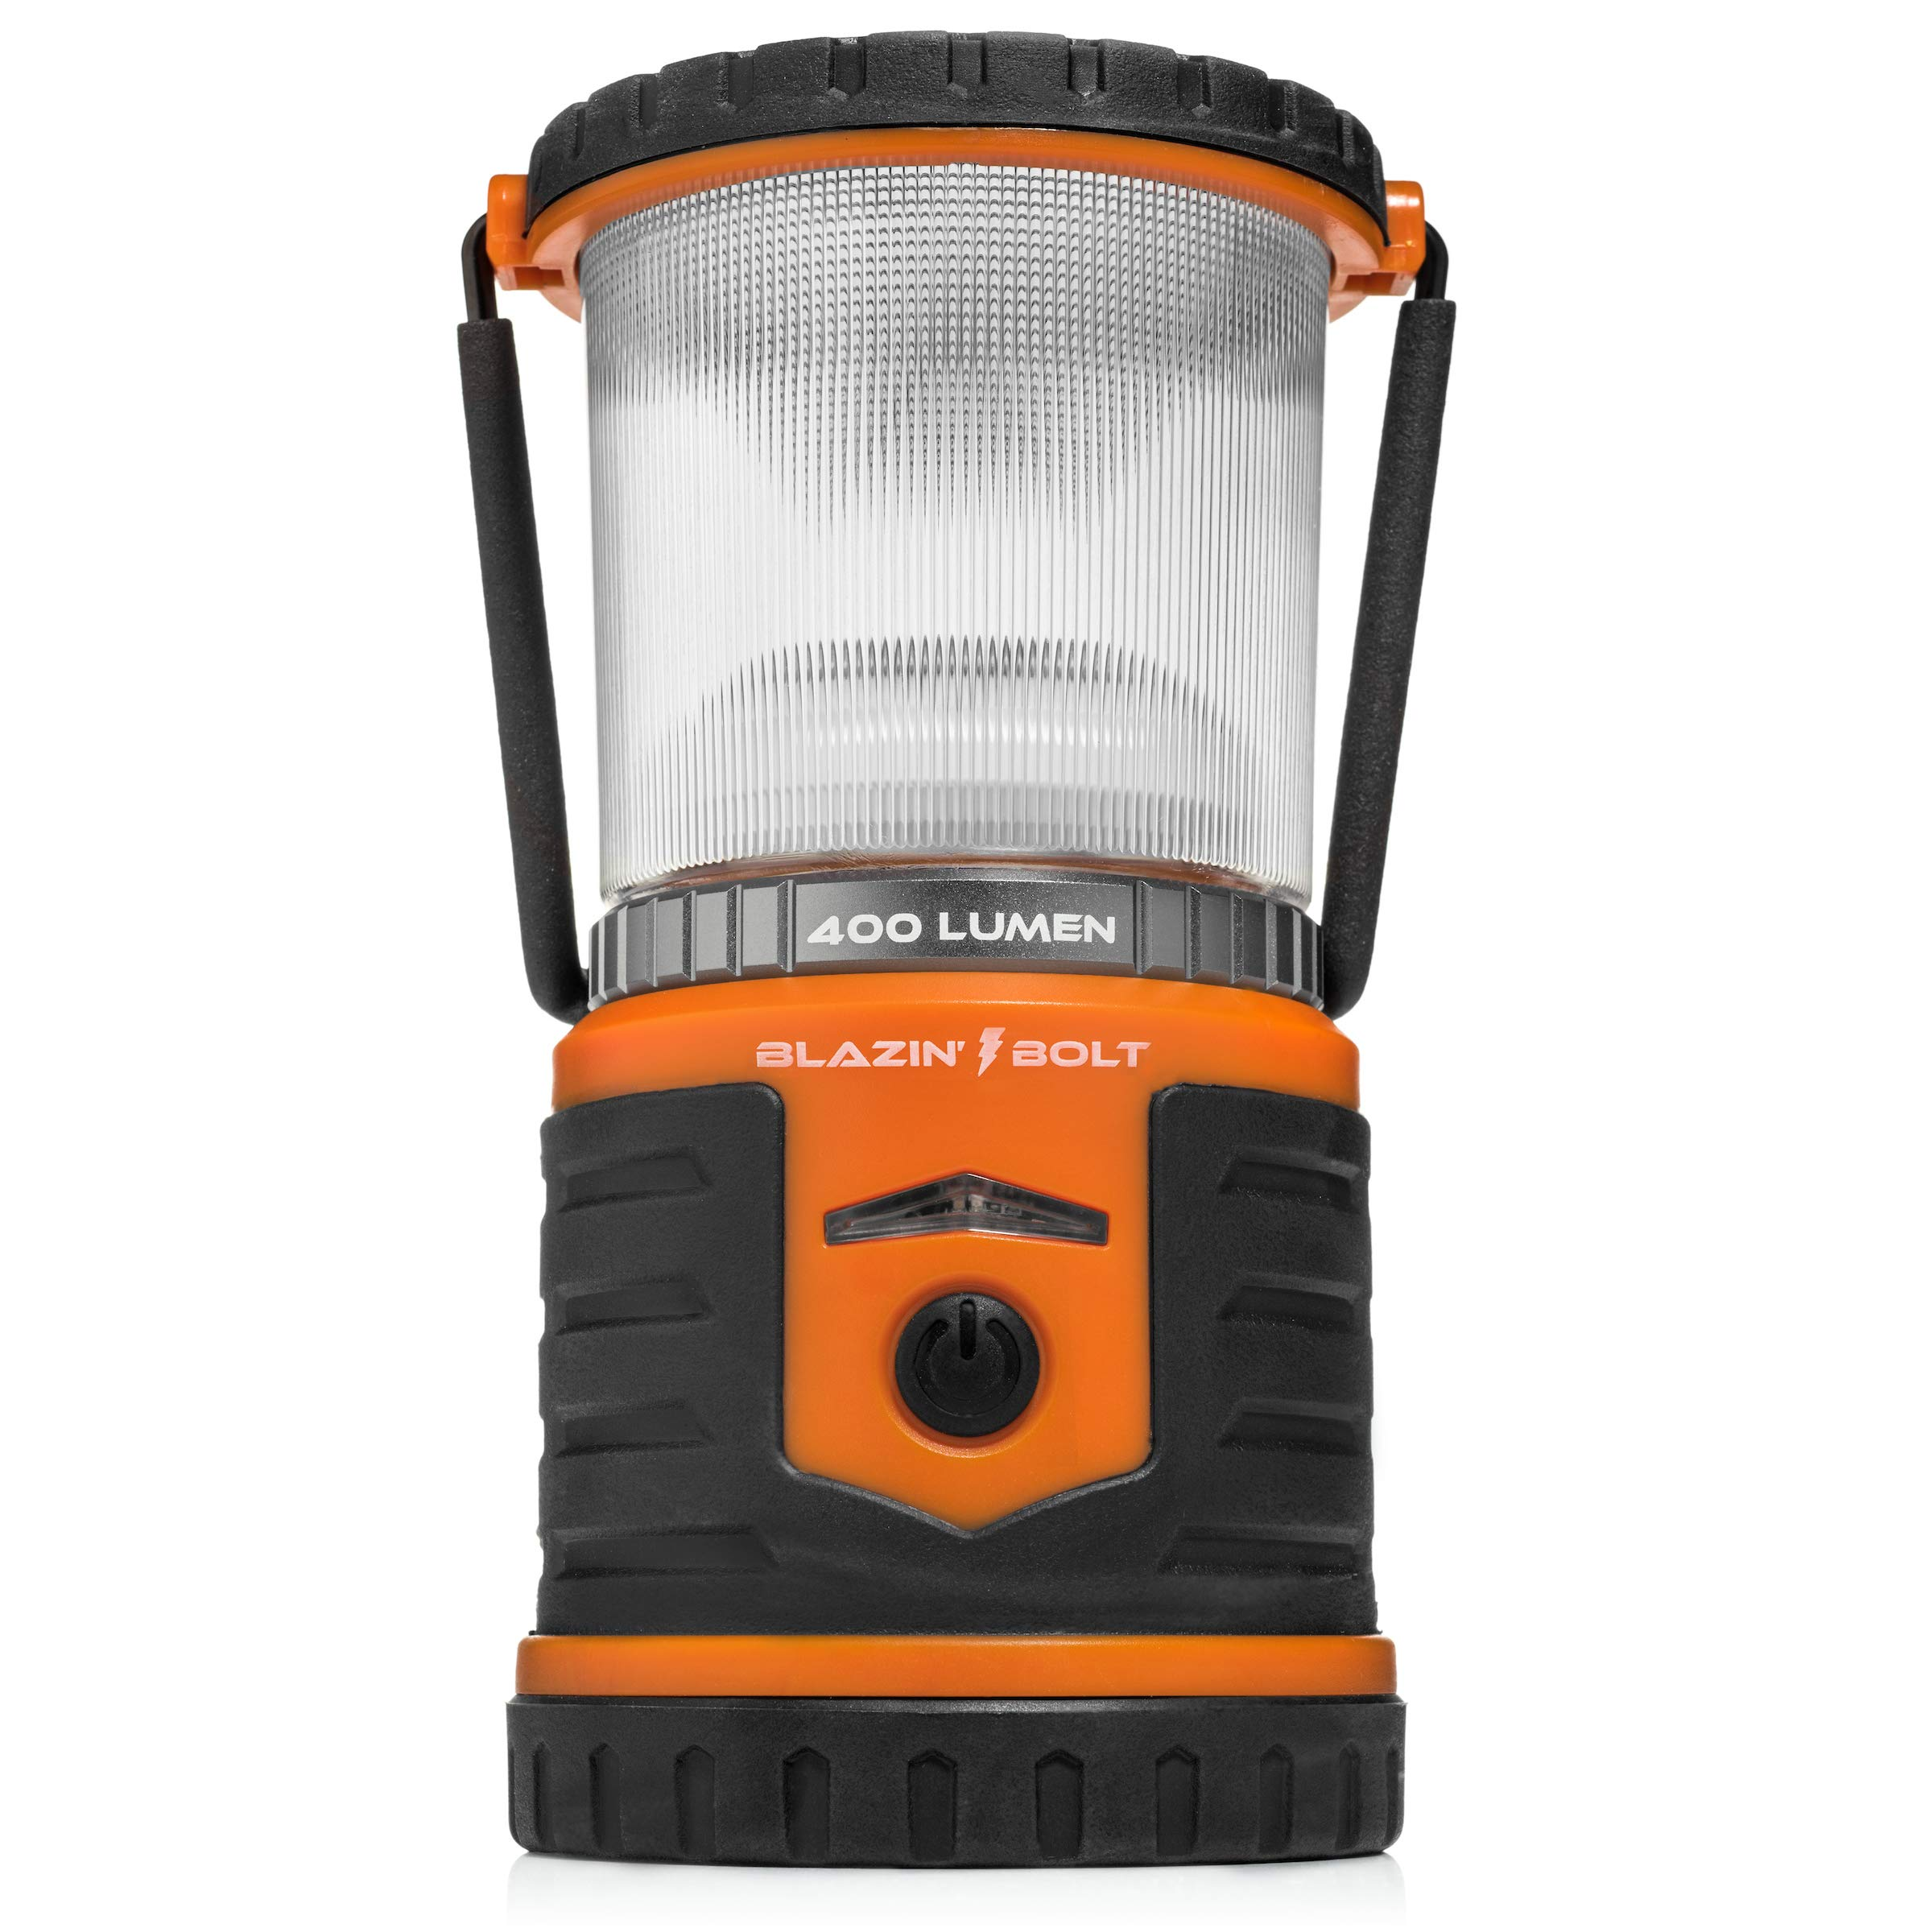 Brightest Rechargeable Lantern LED | Hurricane, Blackout, Storm | Power Bank Light | 400 Hour Runtime (Orange) by Blazin' Bison (Image #1)